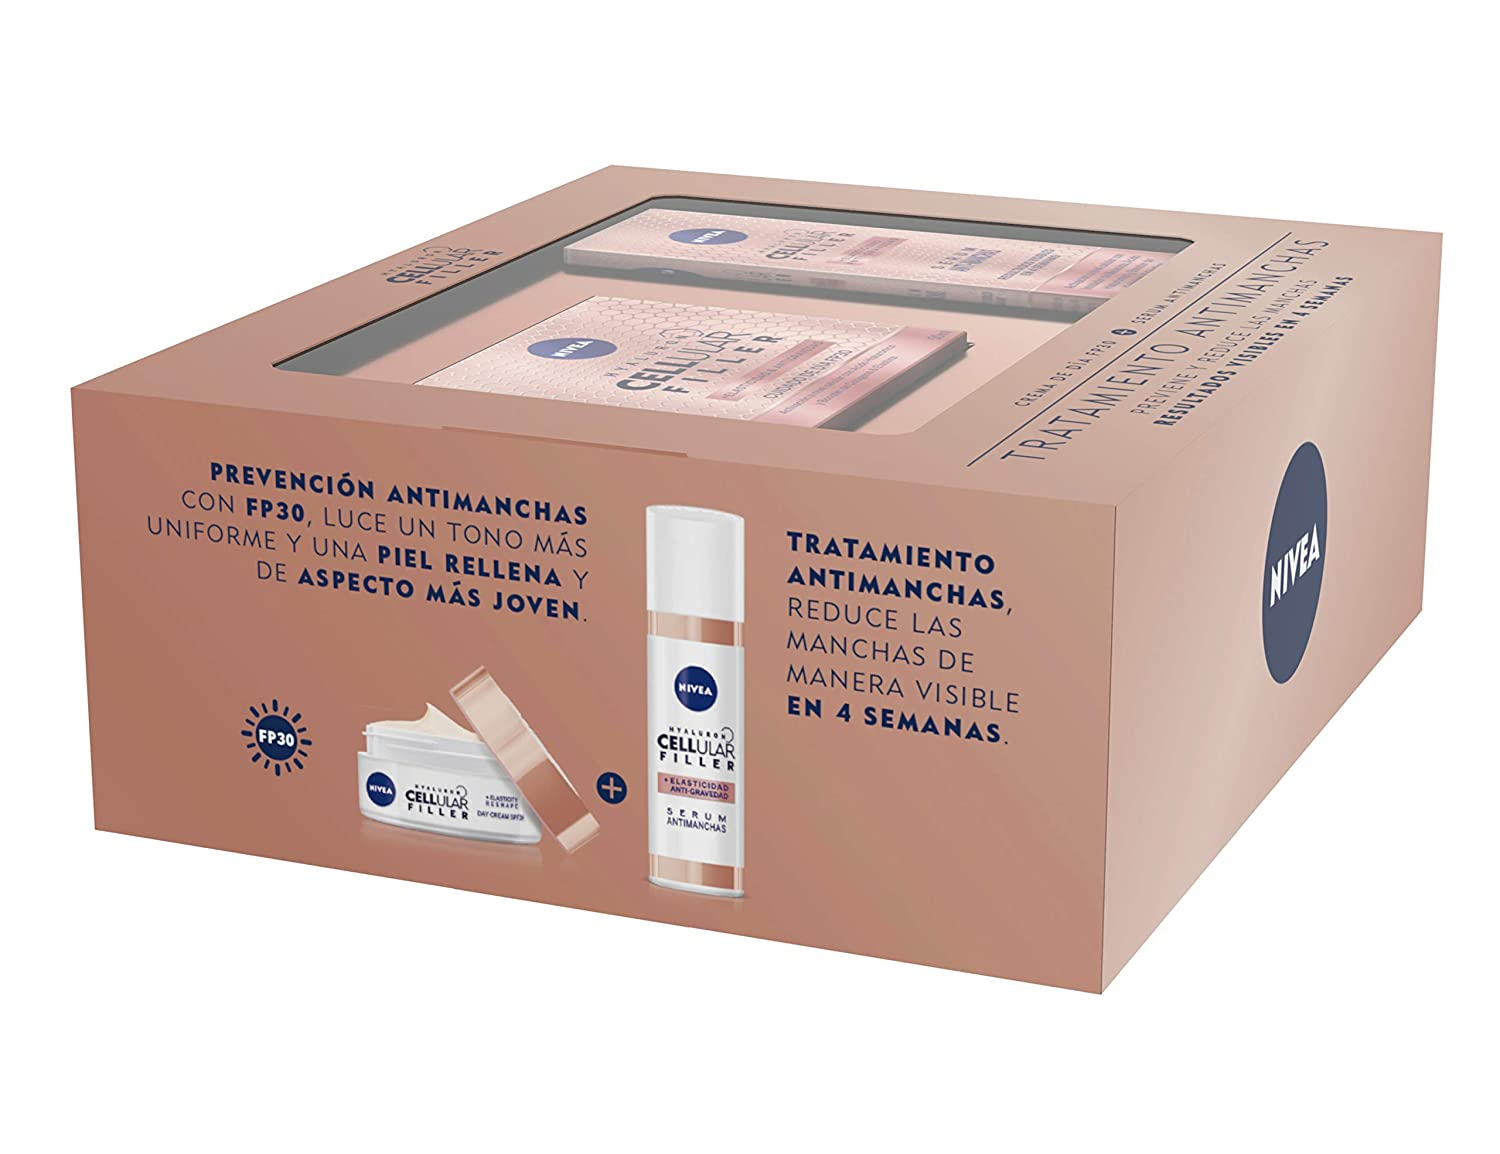 NIVEA Hyaluron Cellular Filler, pack tratamiento antimanchas con ...